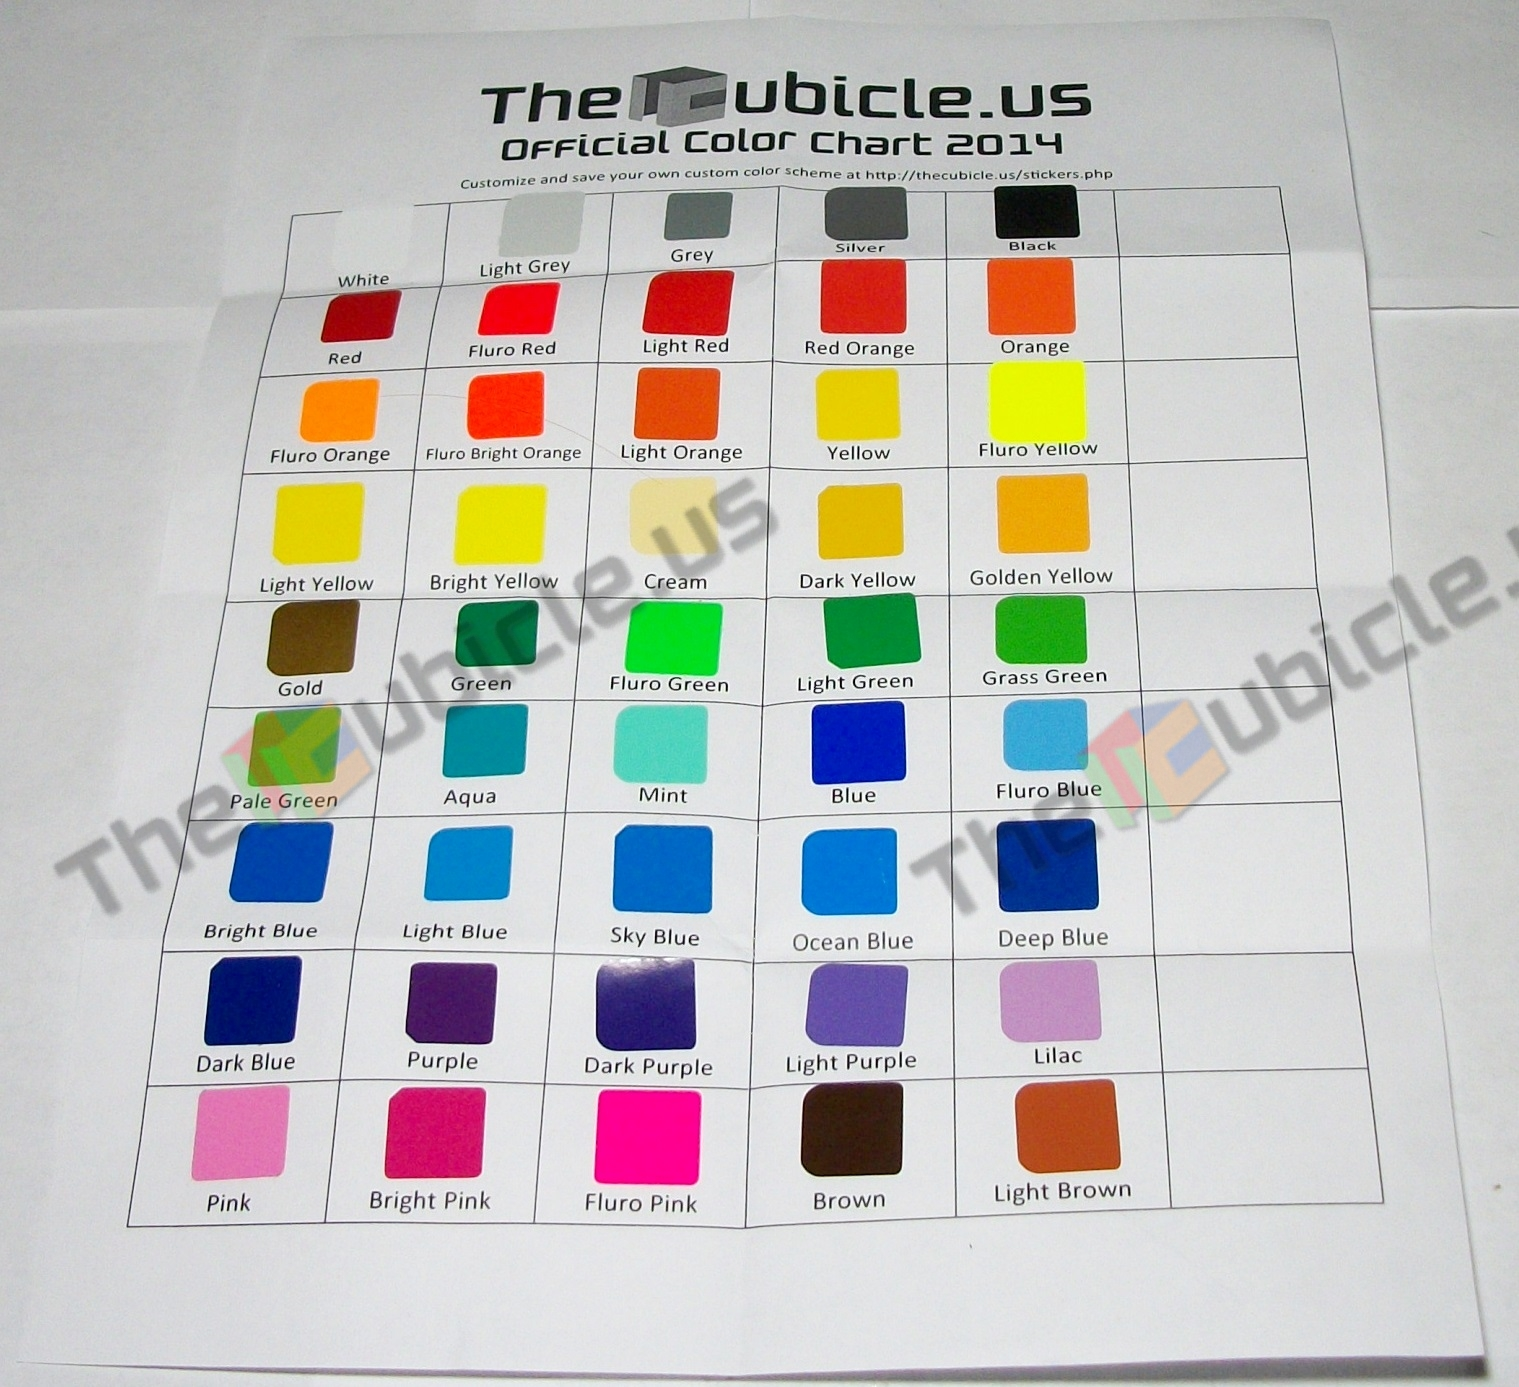 The cubicle stickers official color chart is a pamphlet with organized samples of all 45 colors offered for cubicle brand stickers